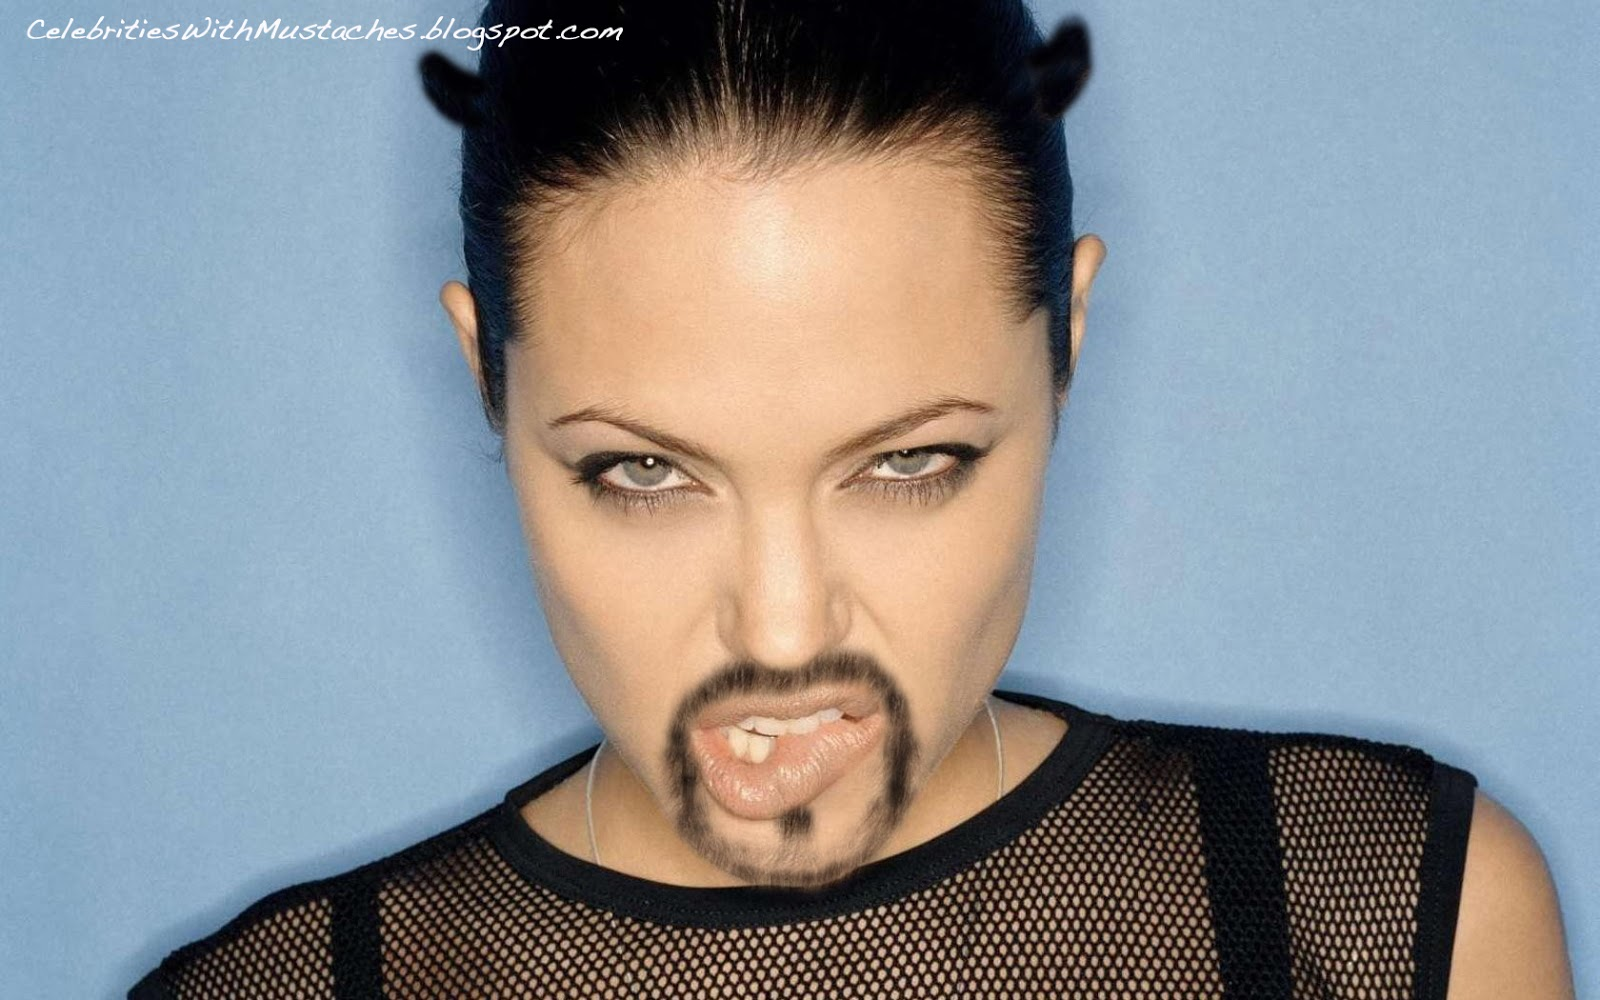 Angelina Jolie with a Goatee